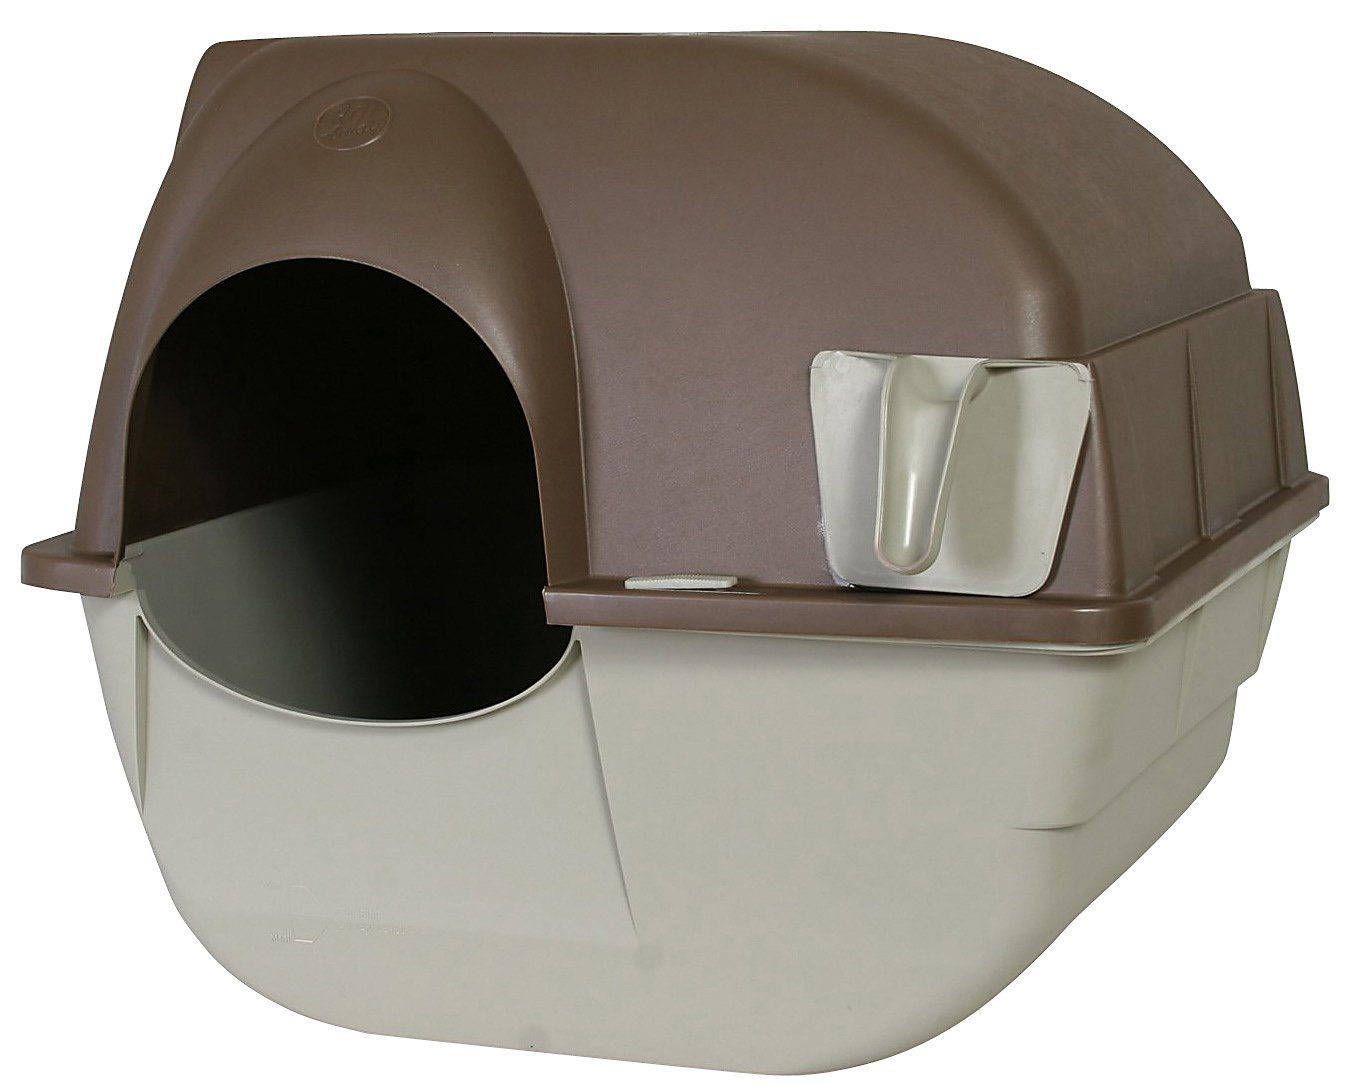 Omega Paw Self-Cleaning Litter Box by Omega Paw